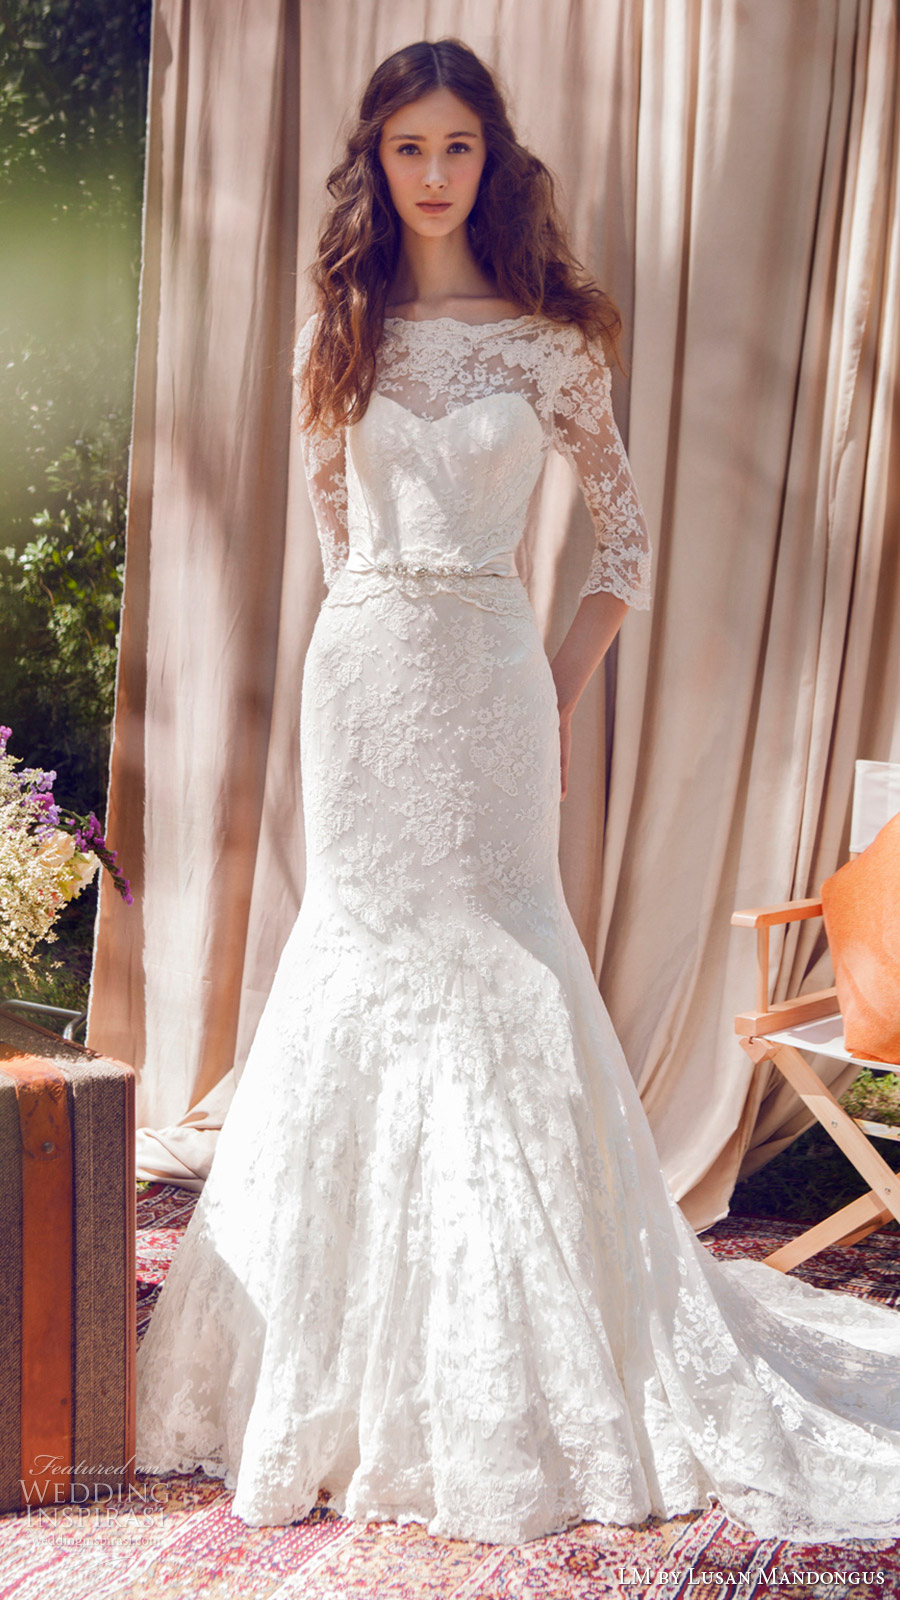 lm lusan mandongus bridal 2017 illusion bateau neck 3 quarter sleees lace trumpet wedding dress (lm3091b) mv train